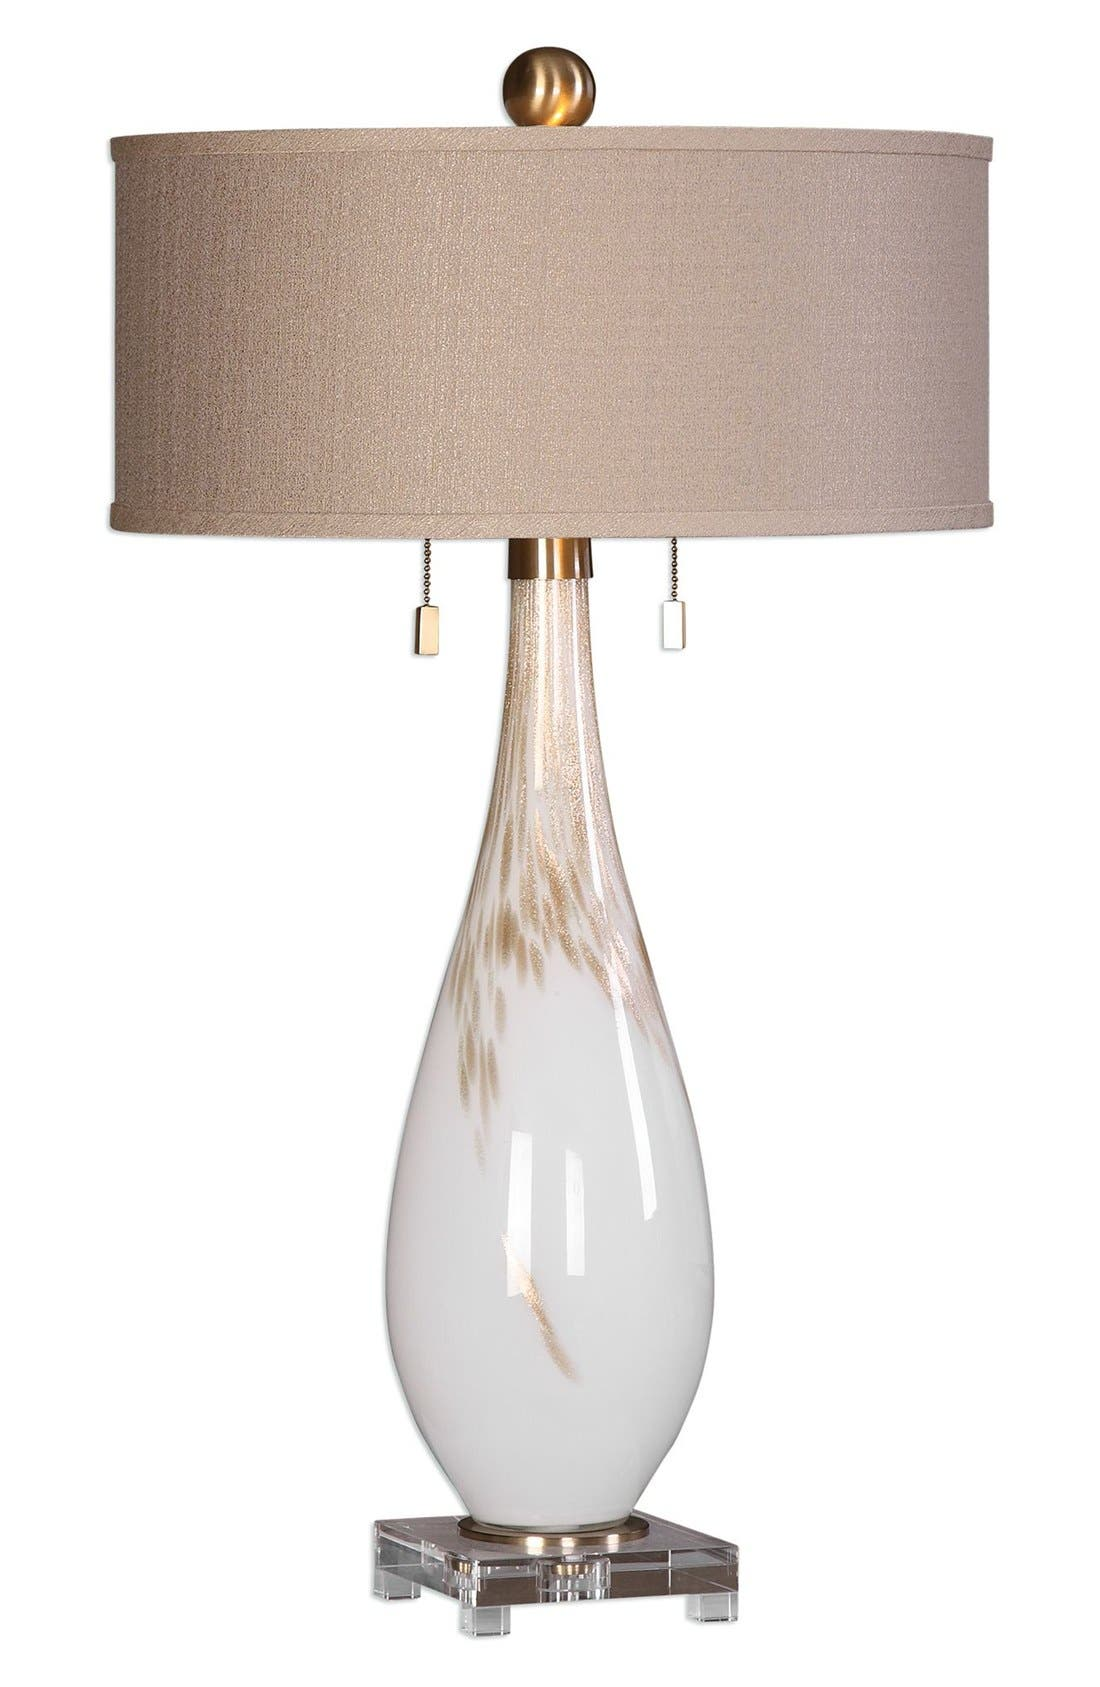 Main Image - Uttermost White Glass Table Lamp